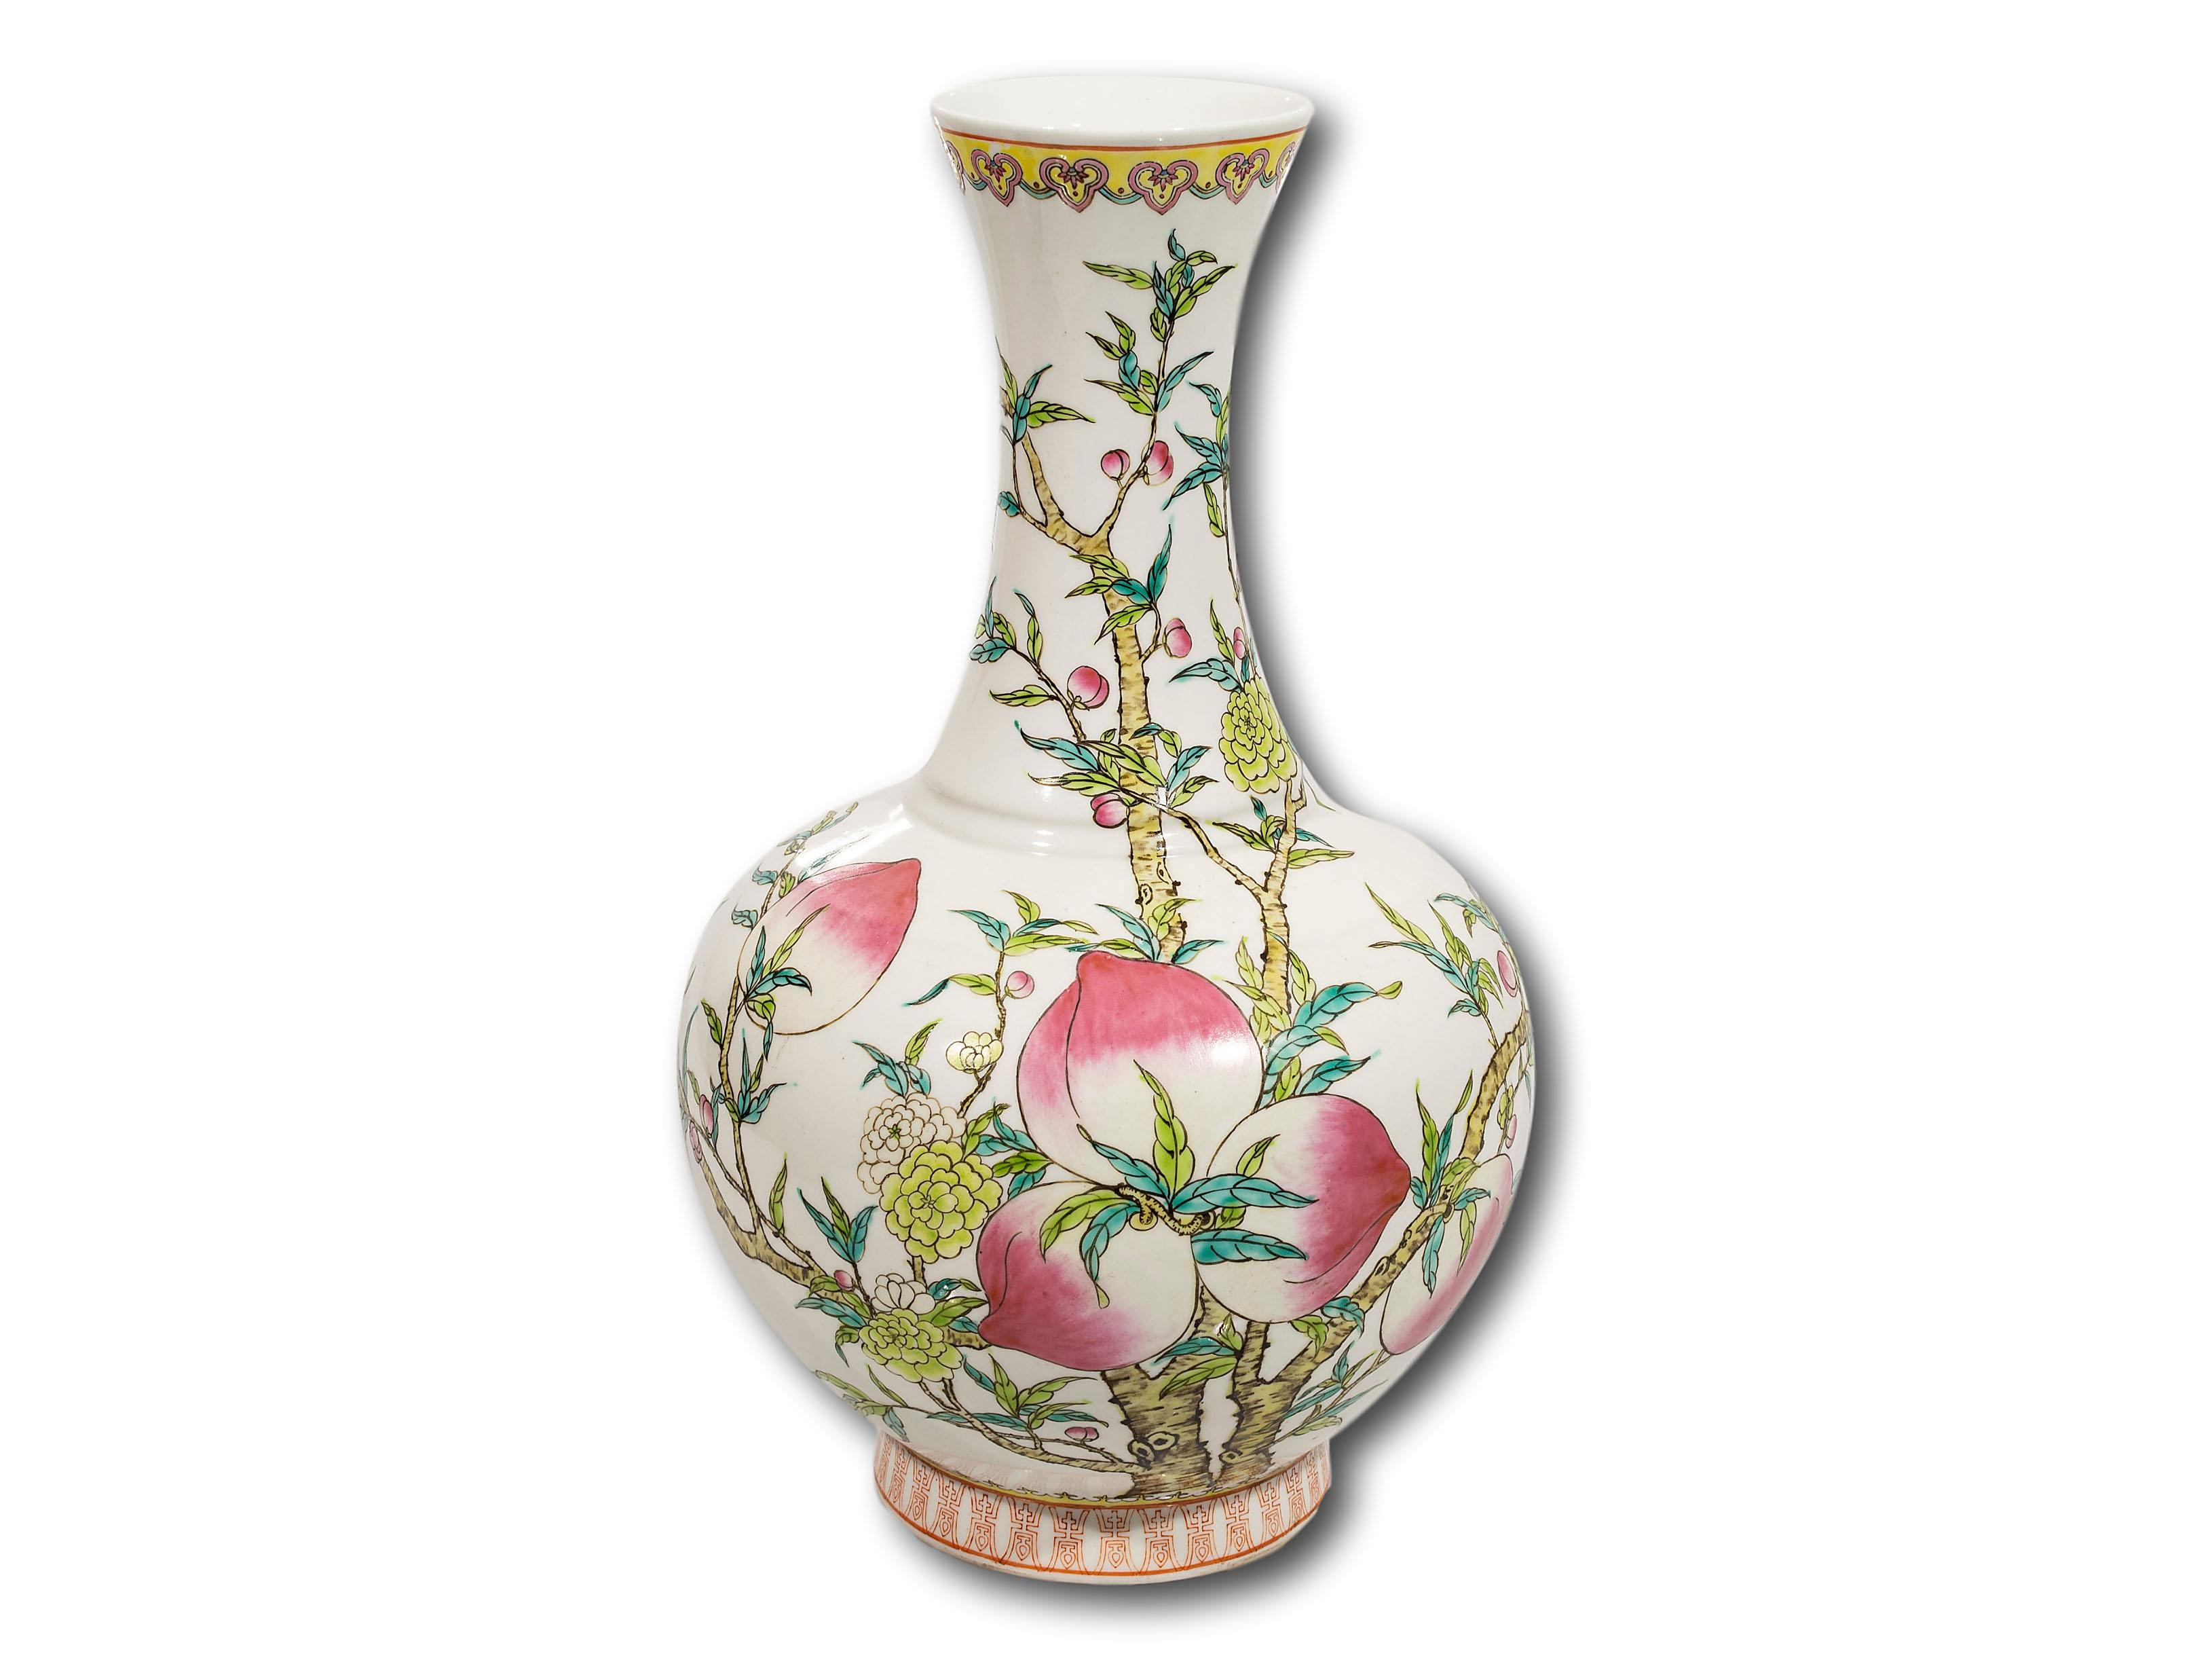 A Chinese Qianling Design Bottle Vase, 40cm